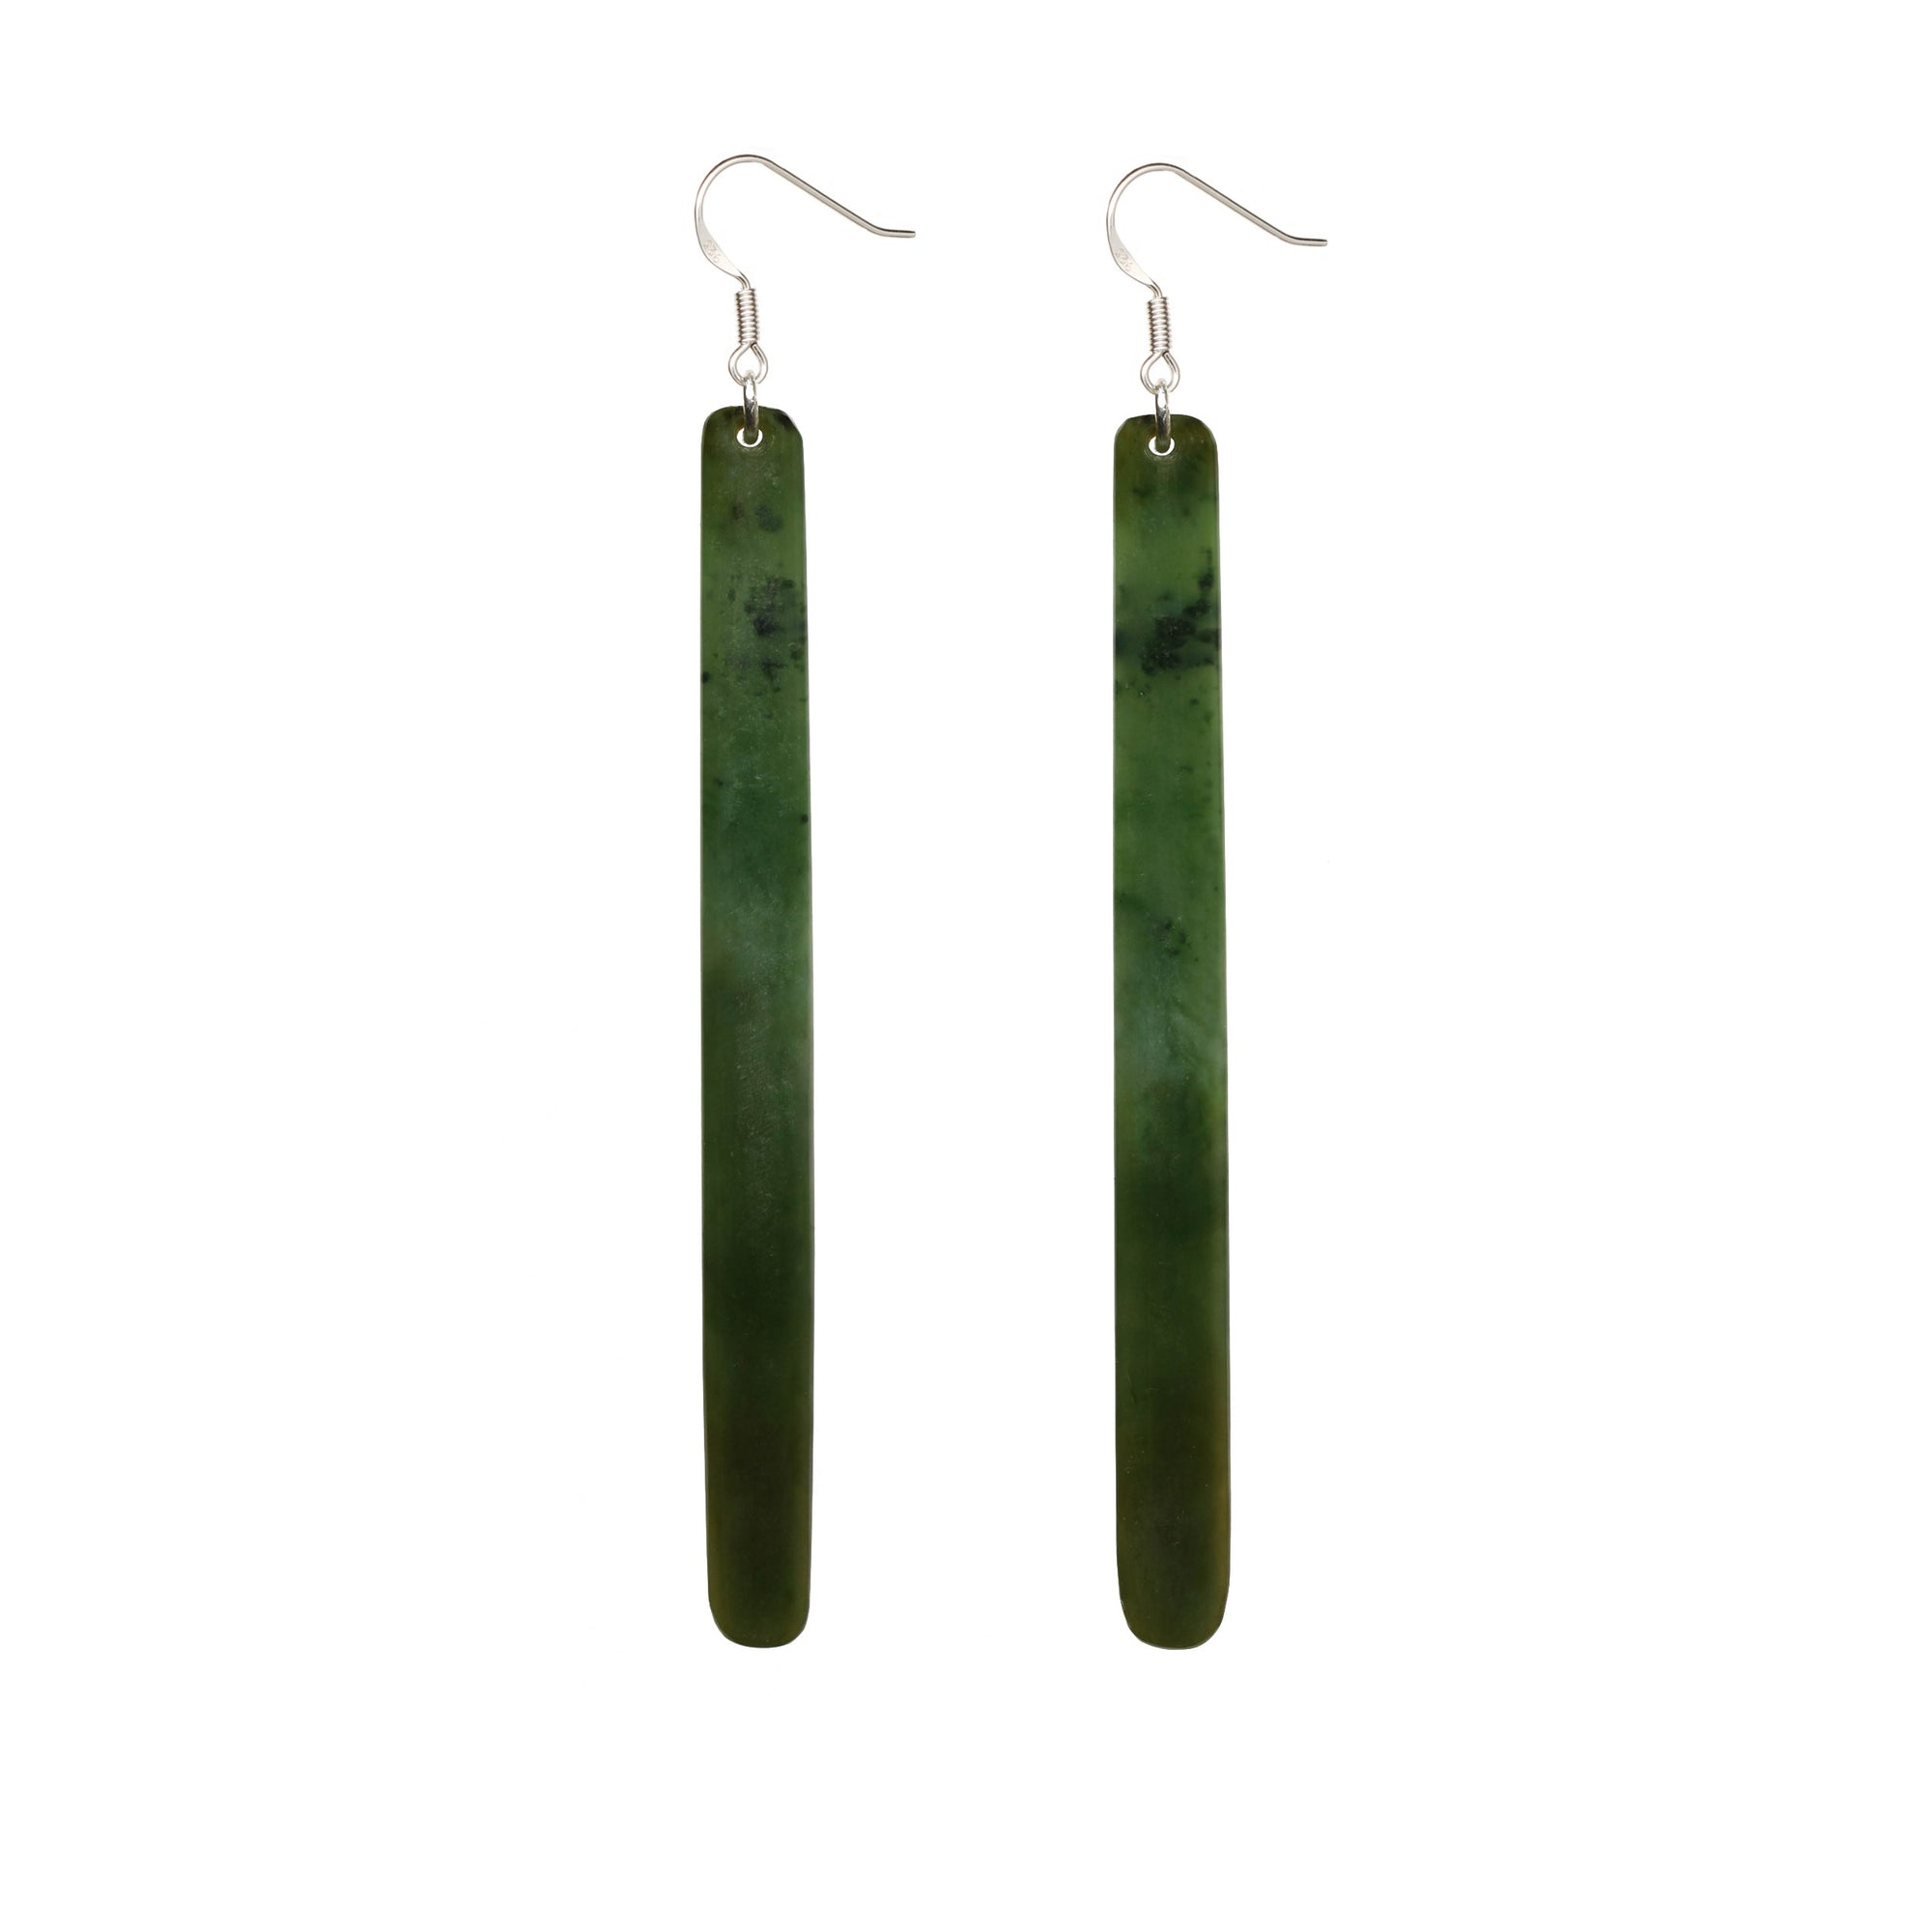 New Zealand Pounamu Long Earrings